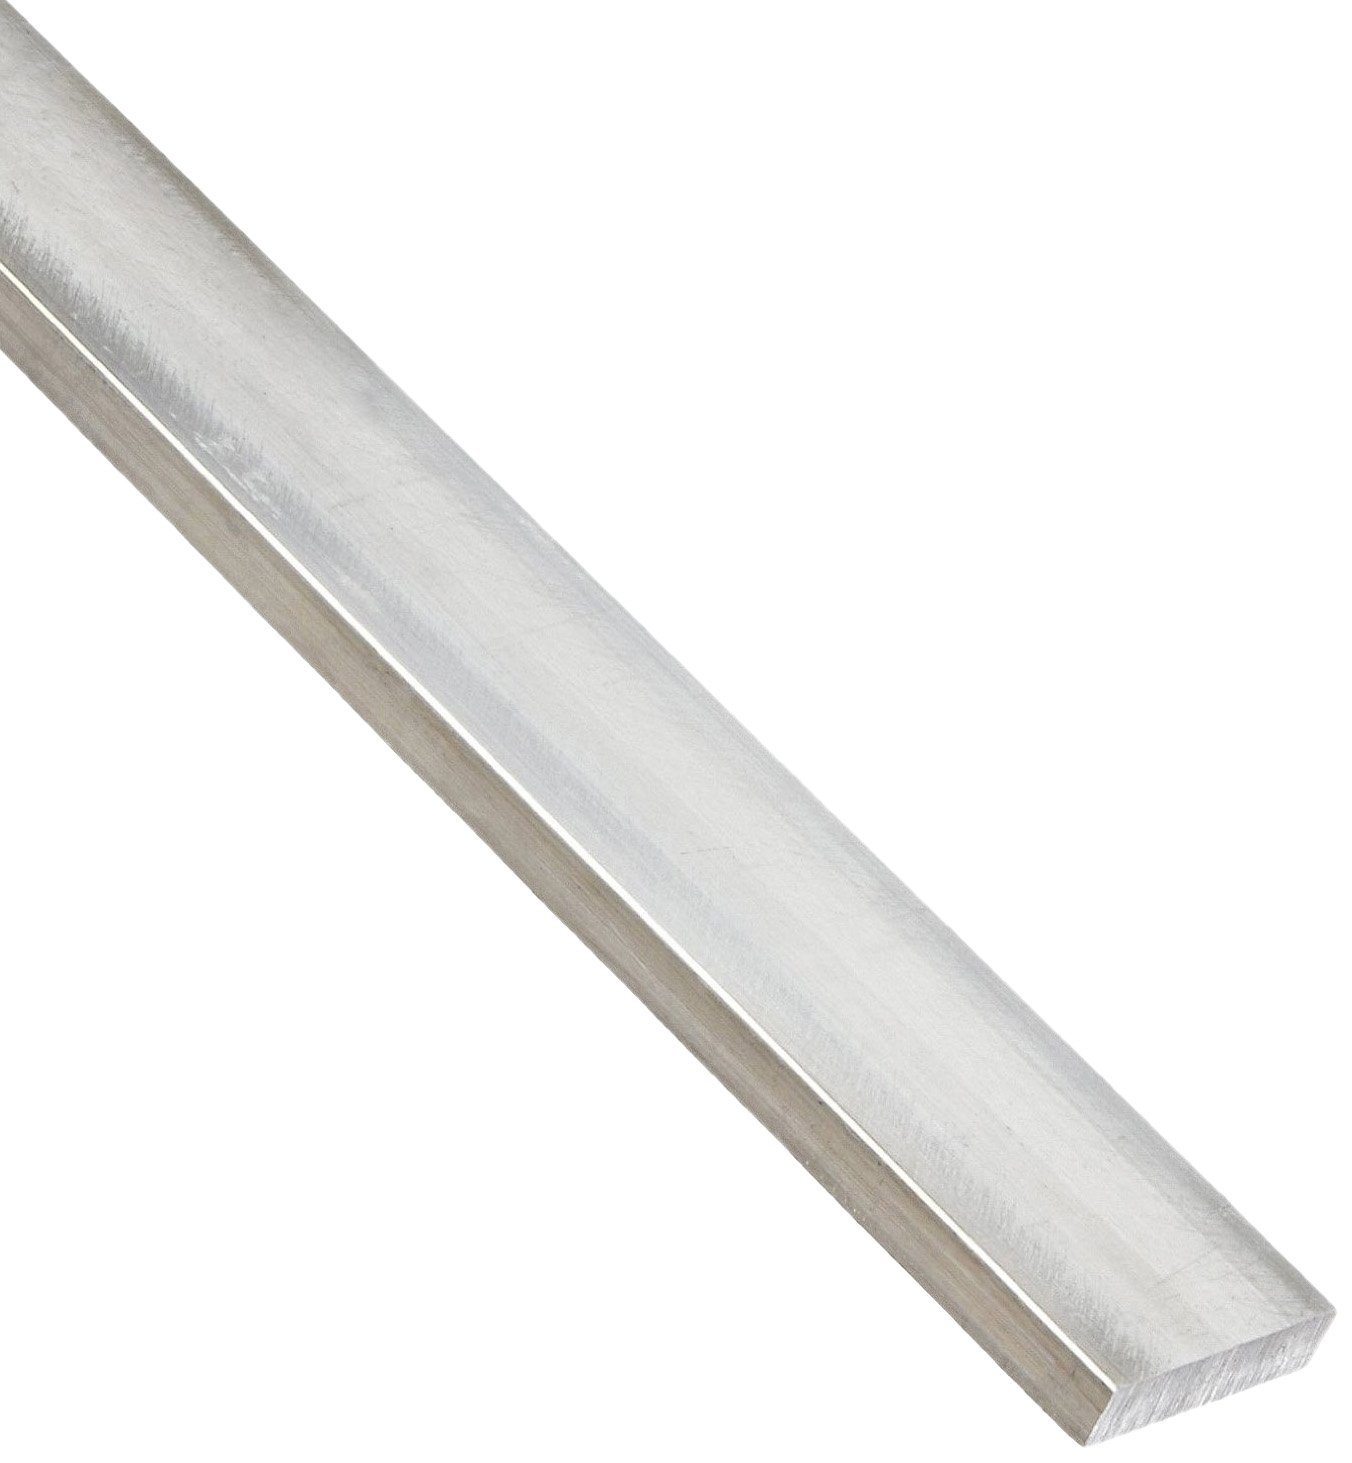 Annealed//Precision Ground D2 Tool Steel Sheet 1 Width ASTM A36 18 Length 1//8 Thickness